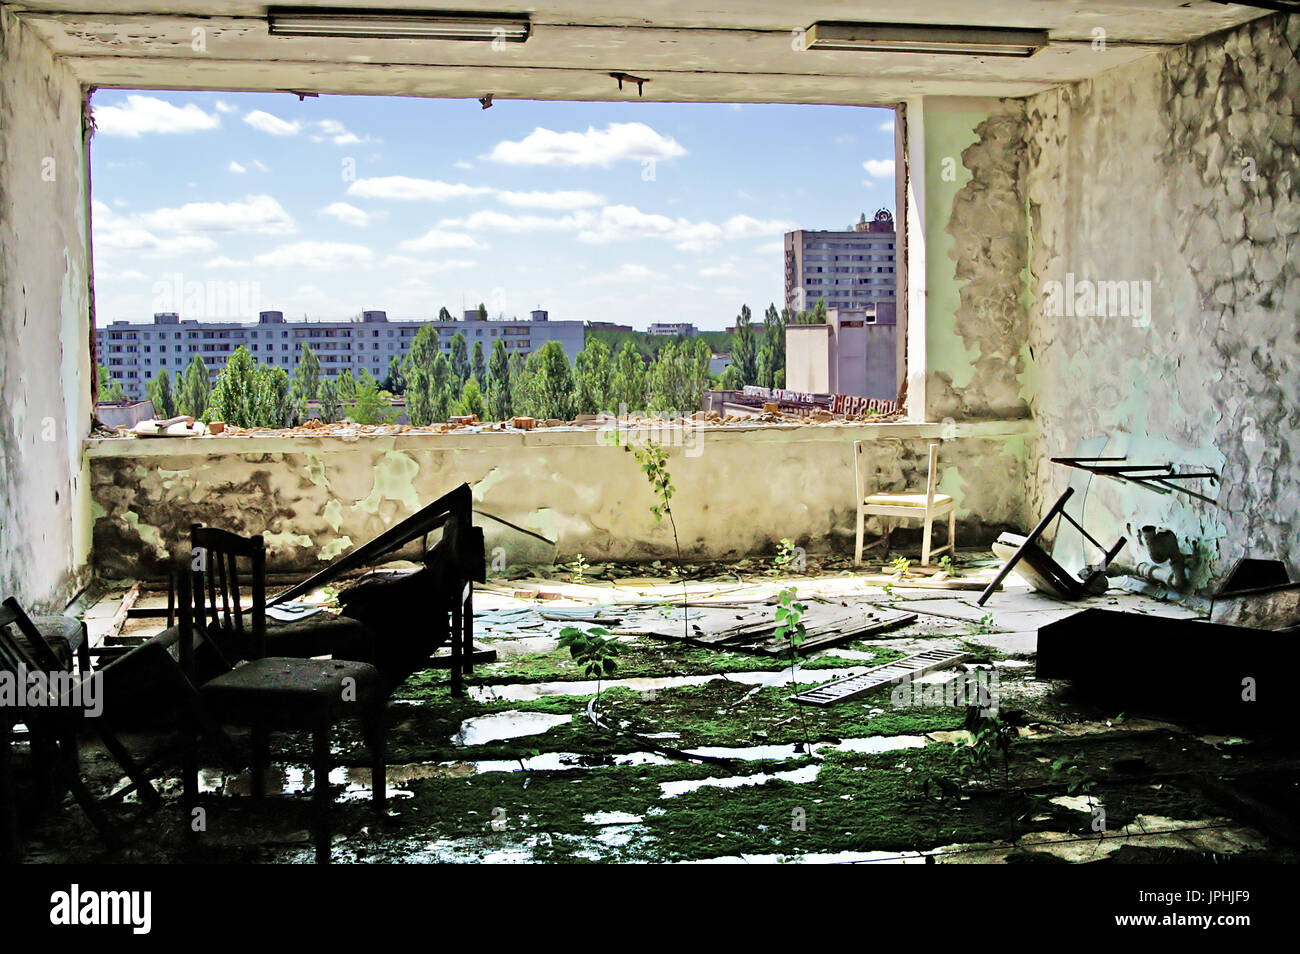 Abandoned Building Interior in Chernobyl Zone. Chornobyl Disaster - Stock Image